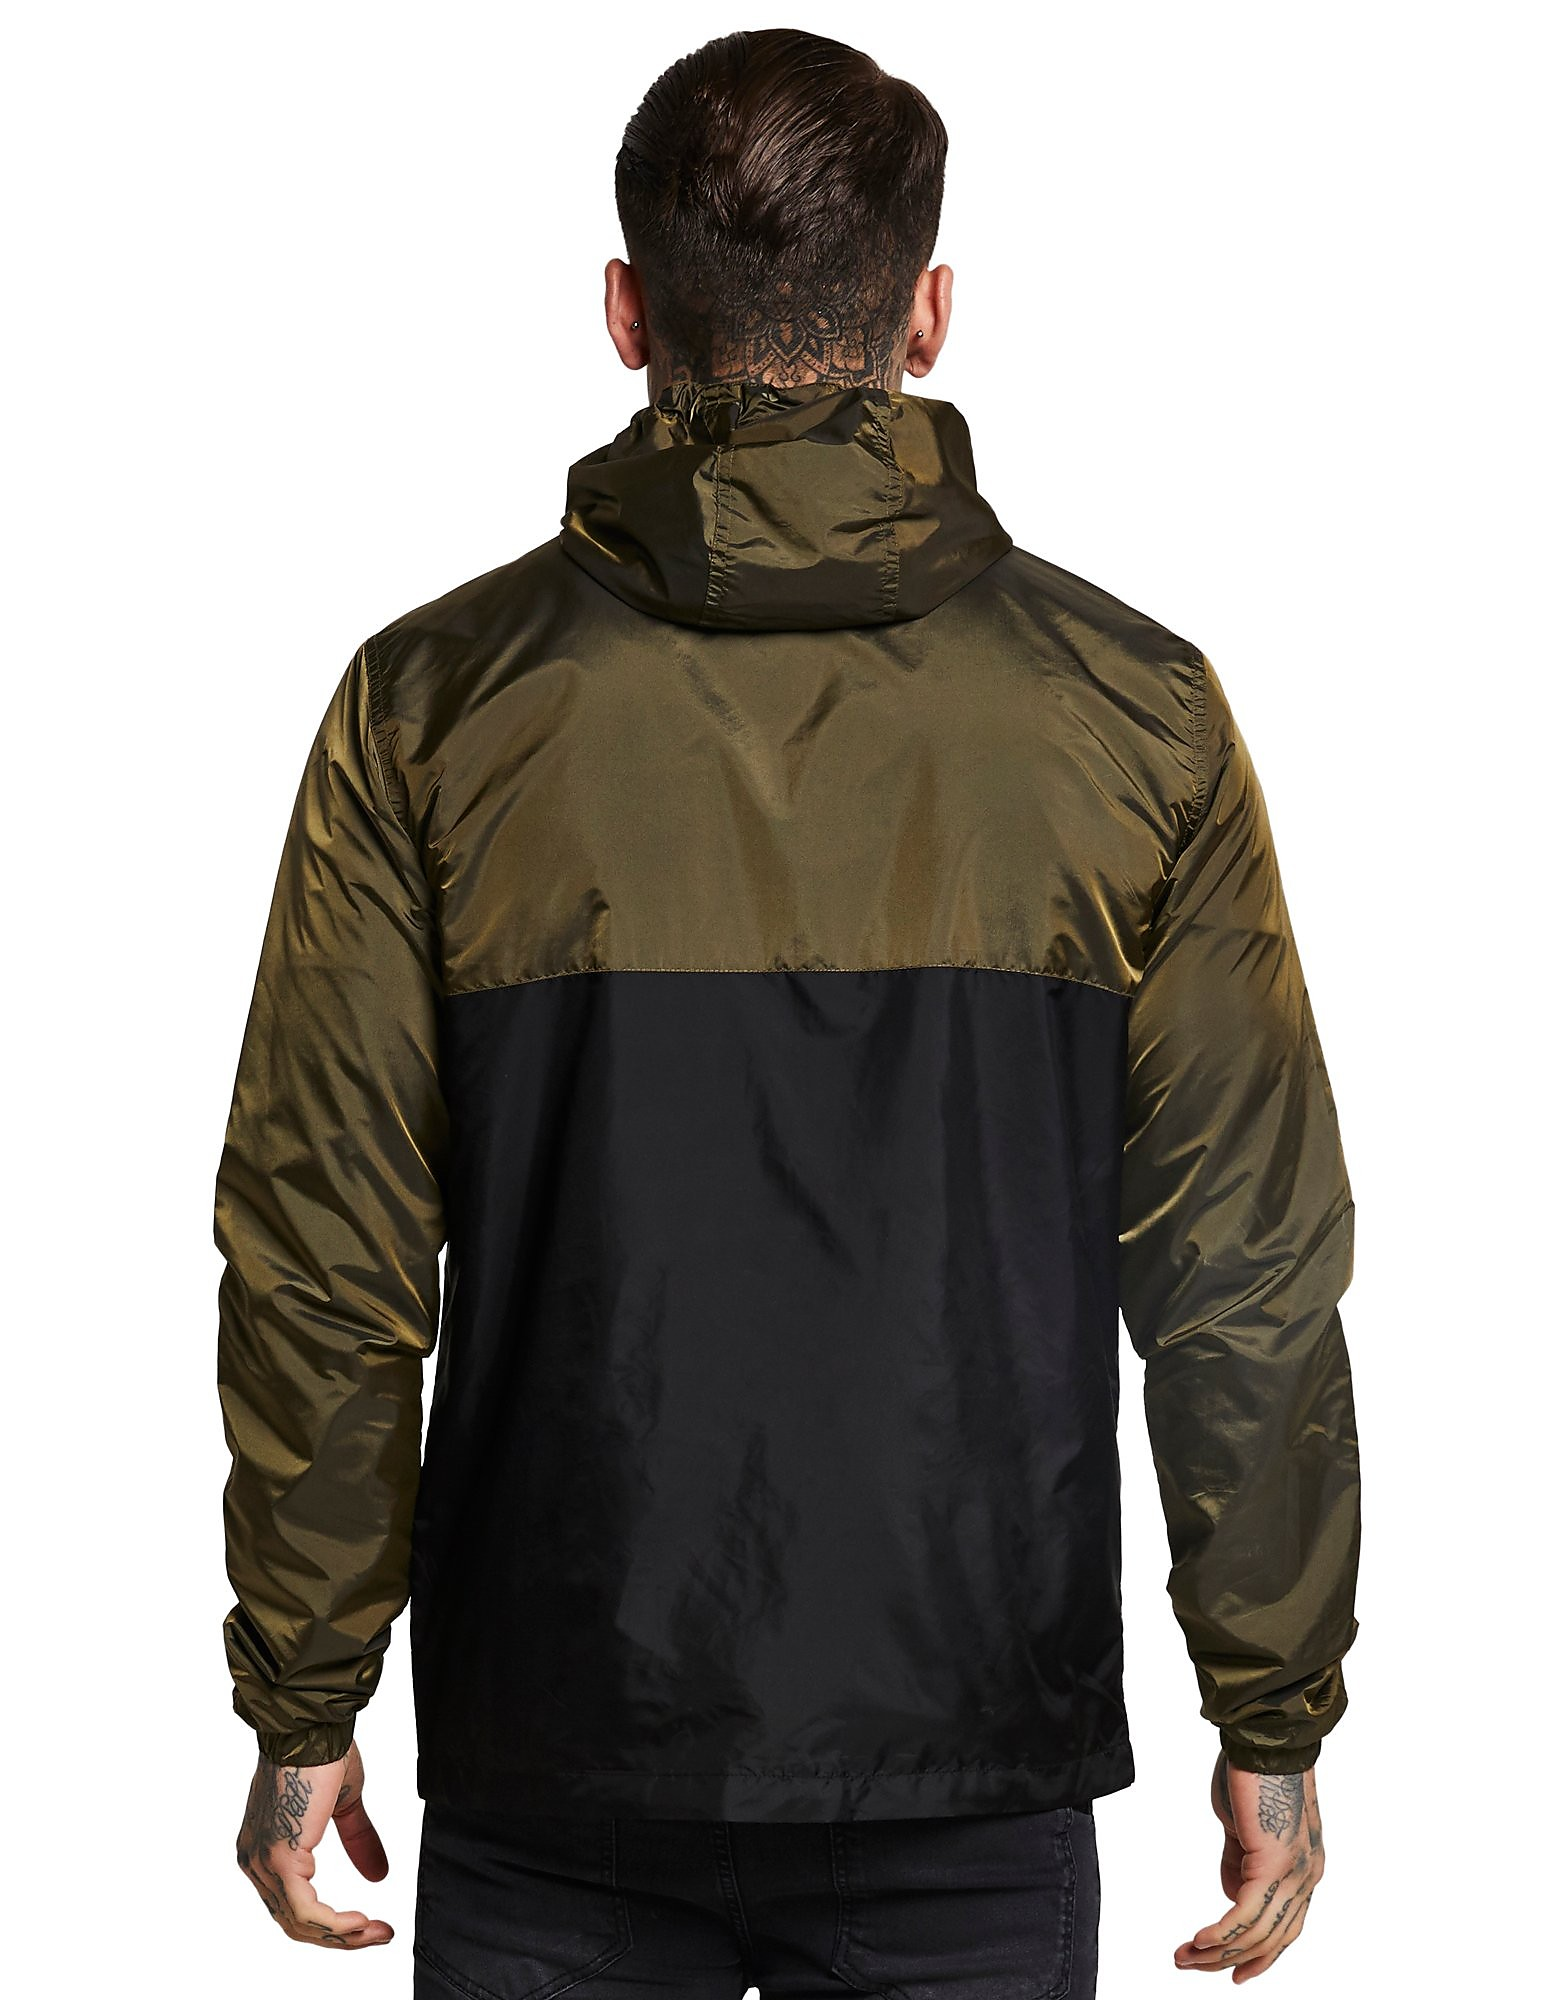 SikSilk Zip Colourblock Hooded Jacket